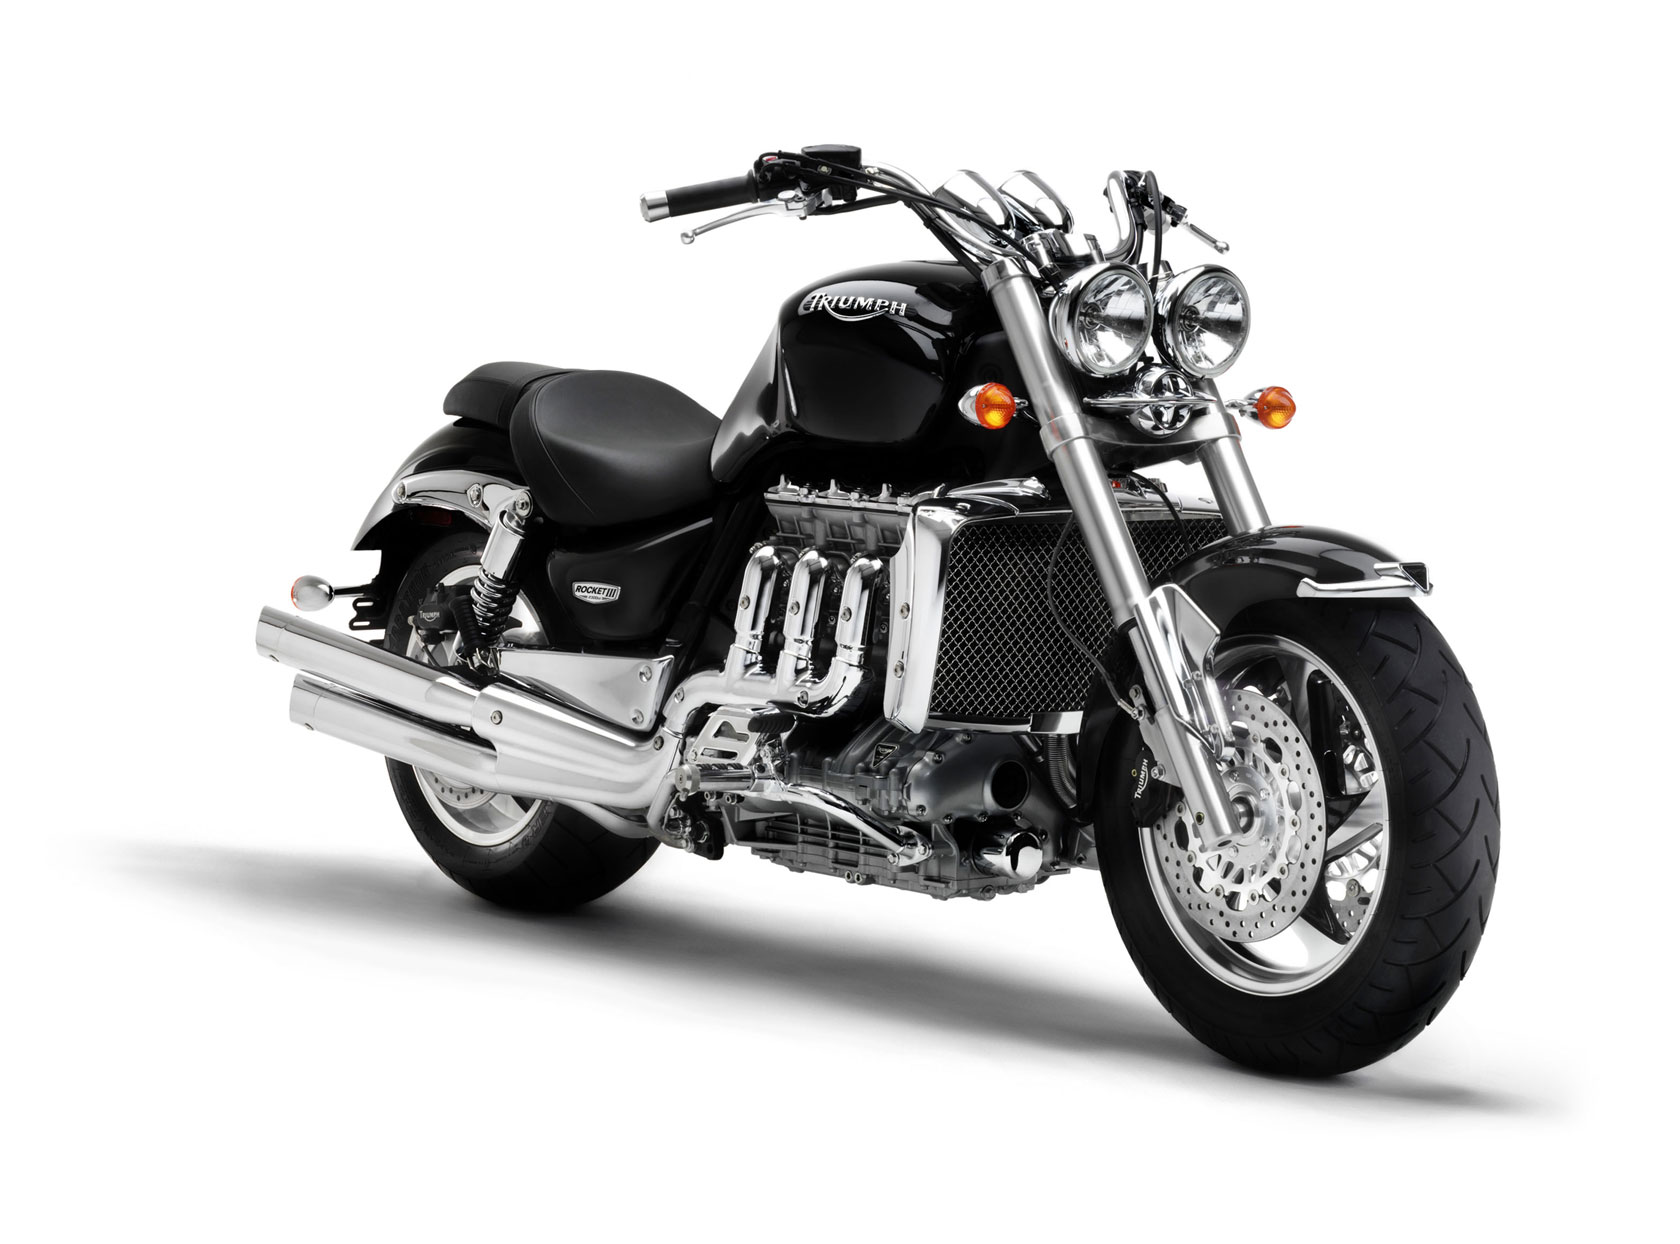 Triumph Rocket III 2004 images #125248